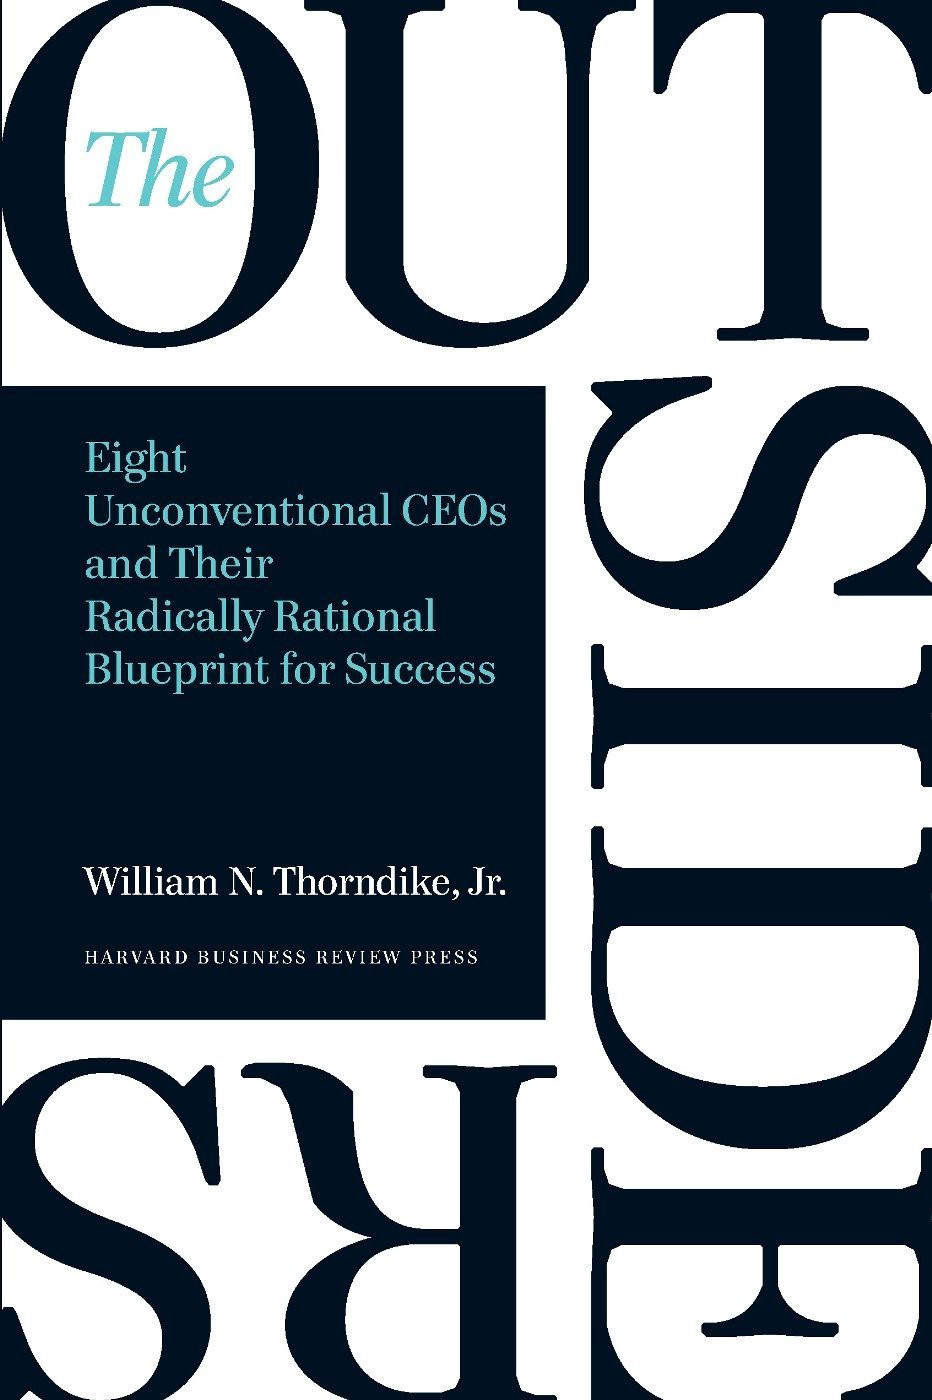 The radically rational blueprint for success of unconventional ceos malvernweather Image collections